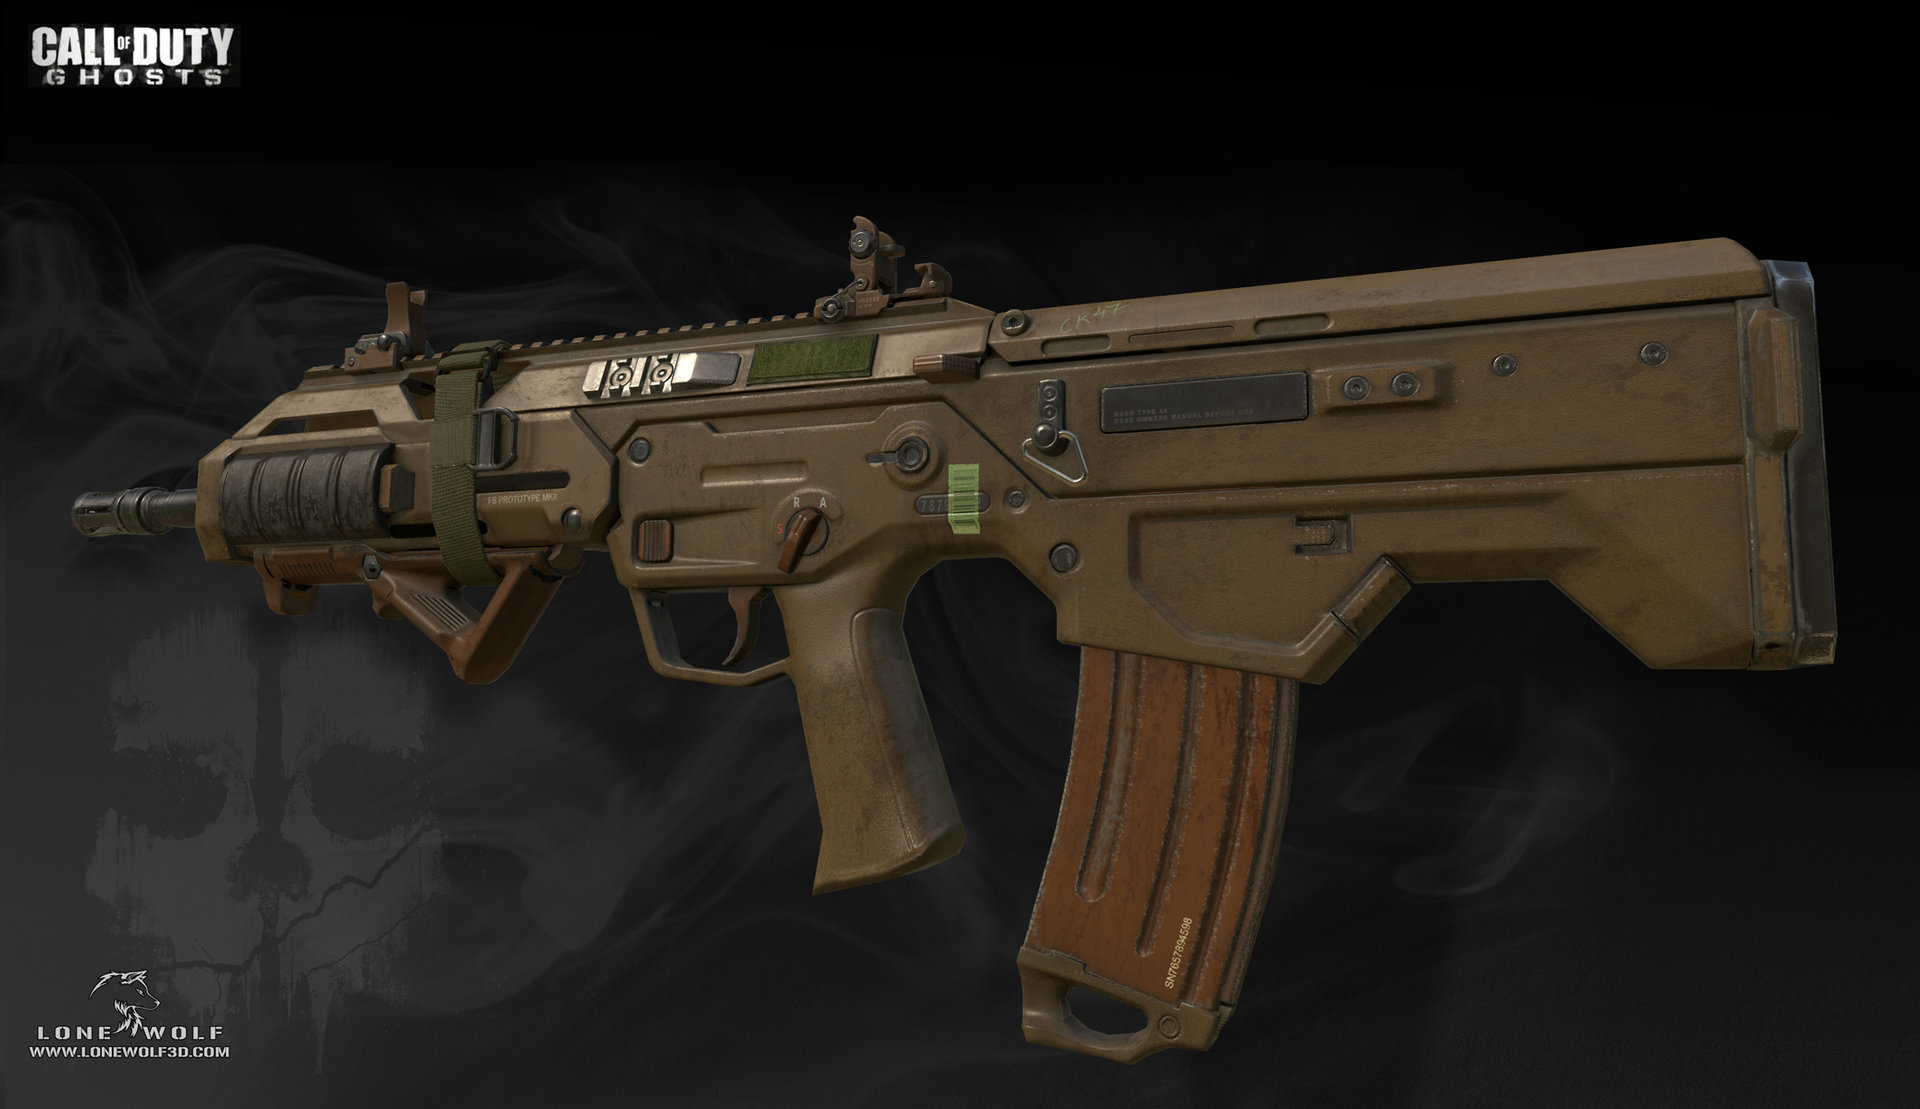 Call of duty ghosts msbs game model 02